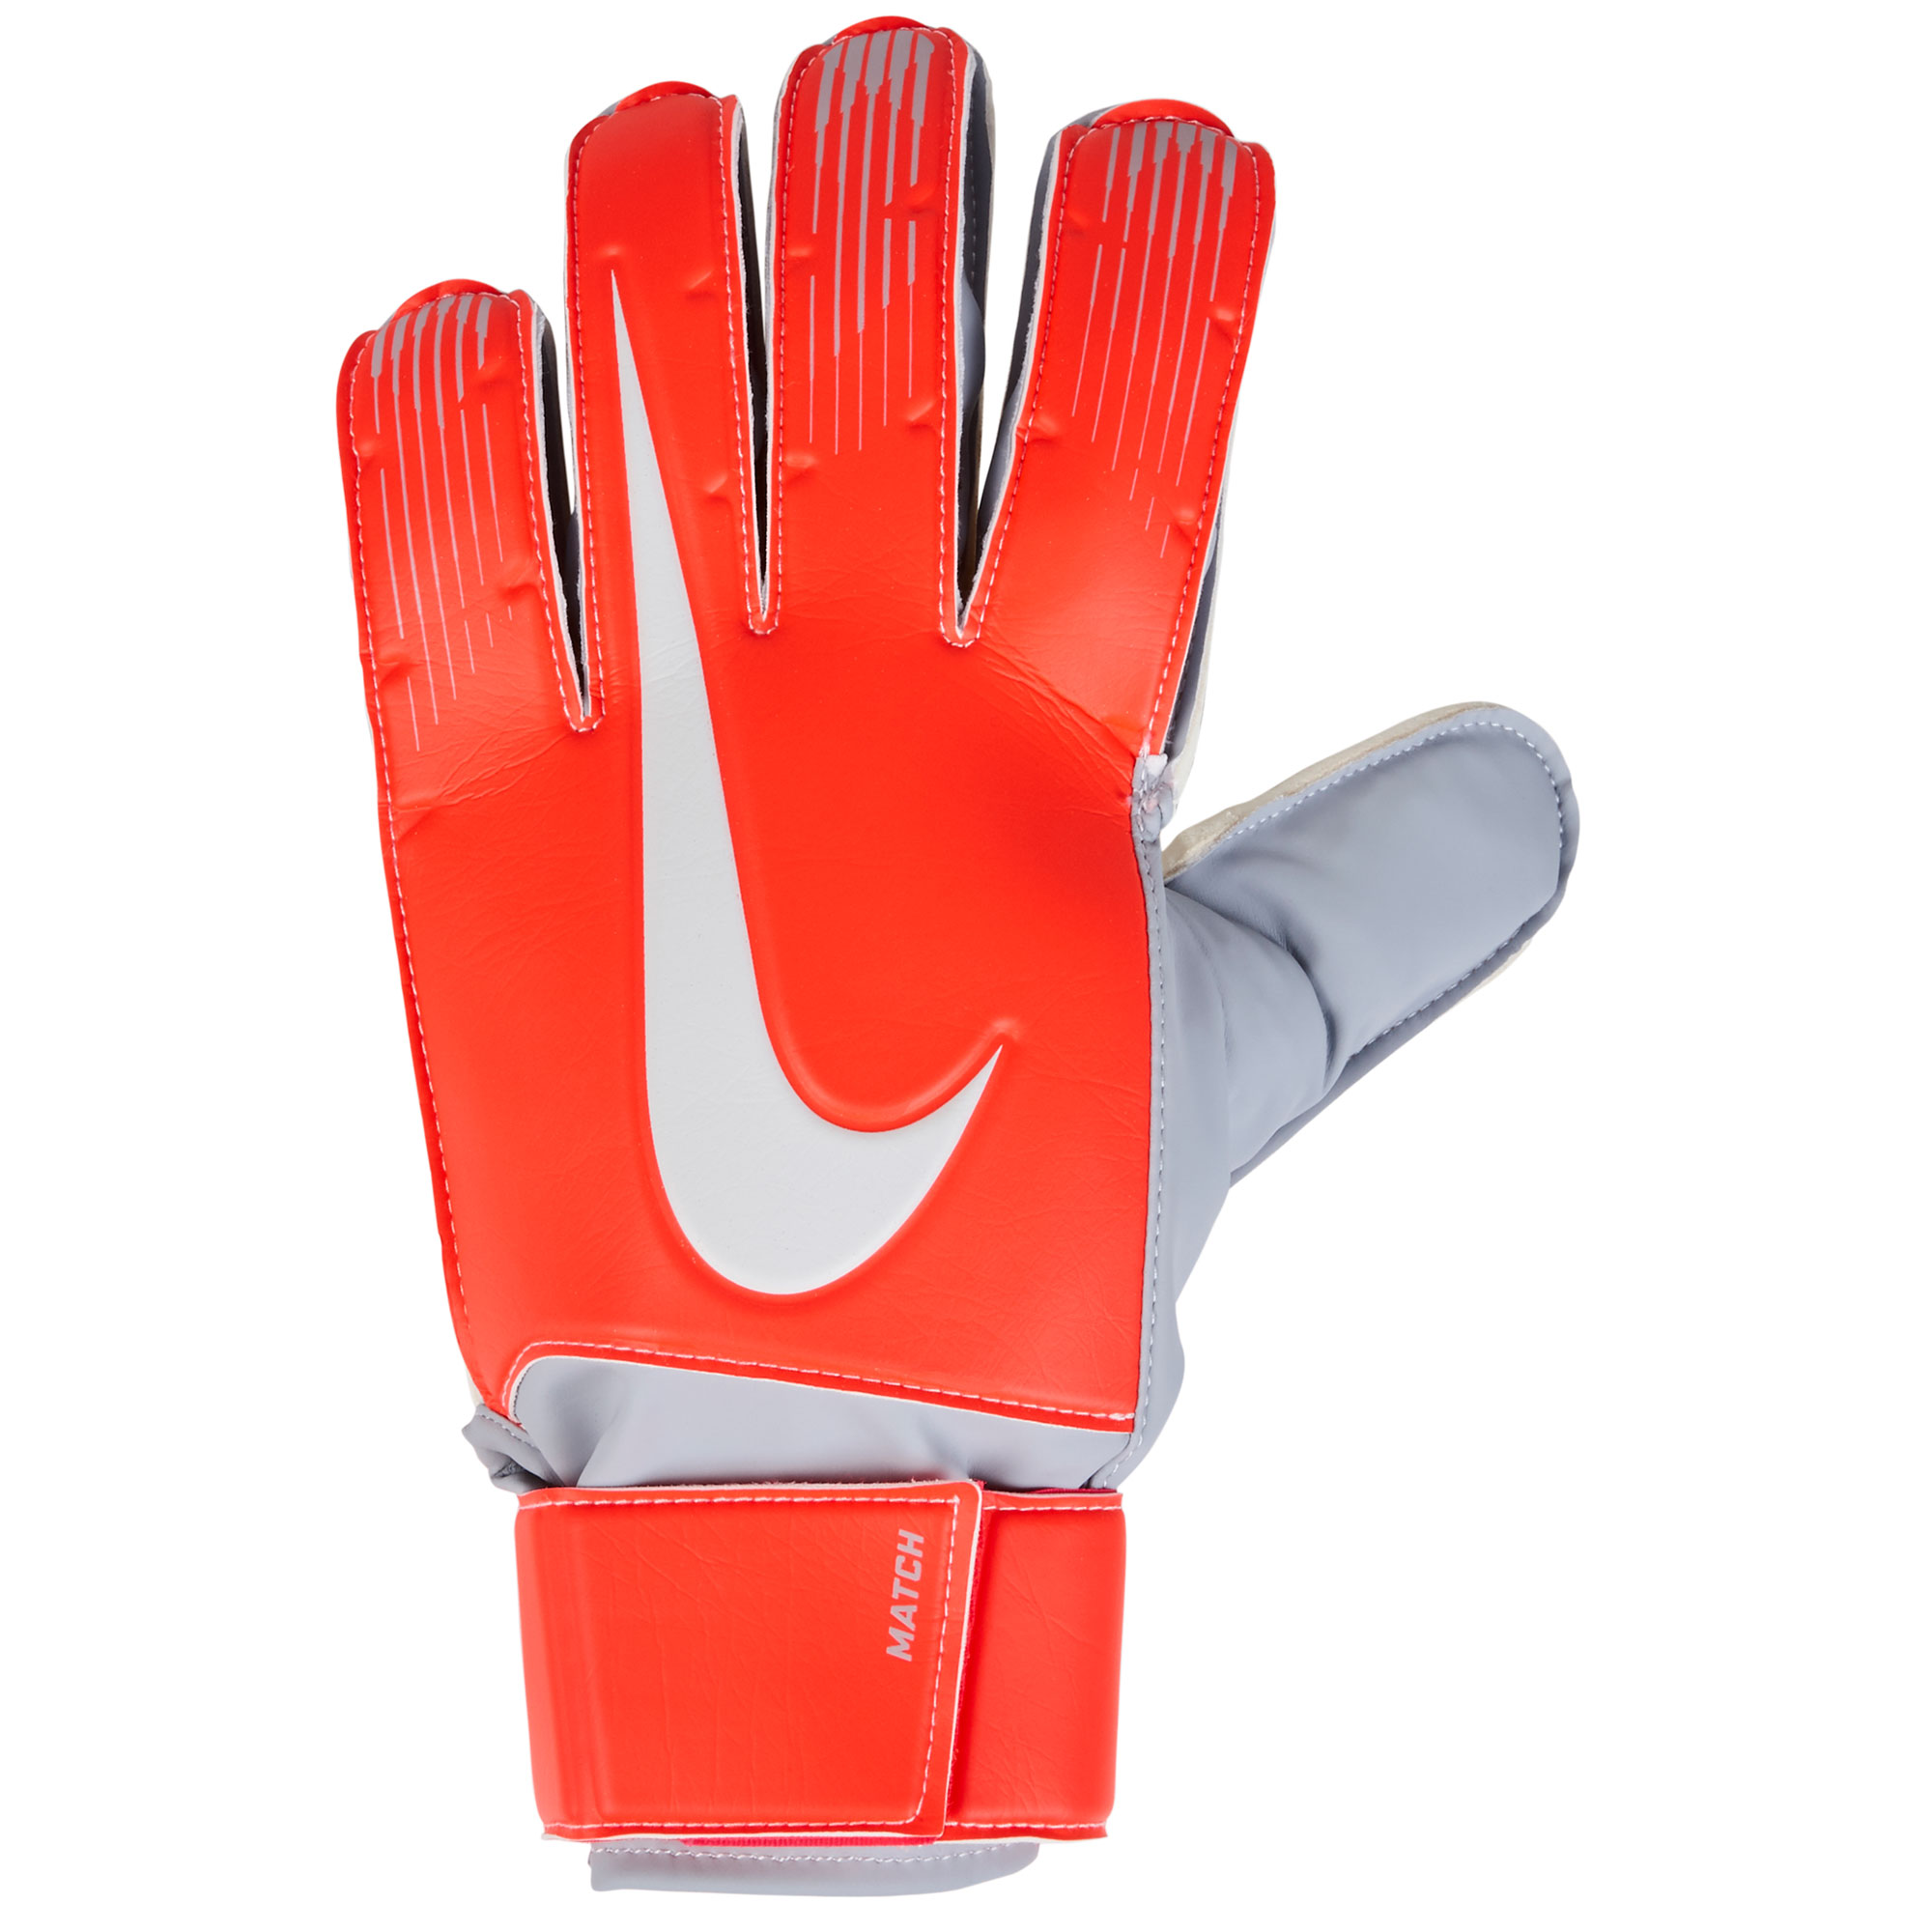 Nike Match Goalkeeper Gloves - Red - Kids